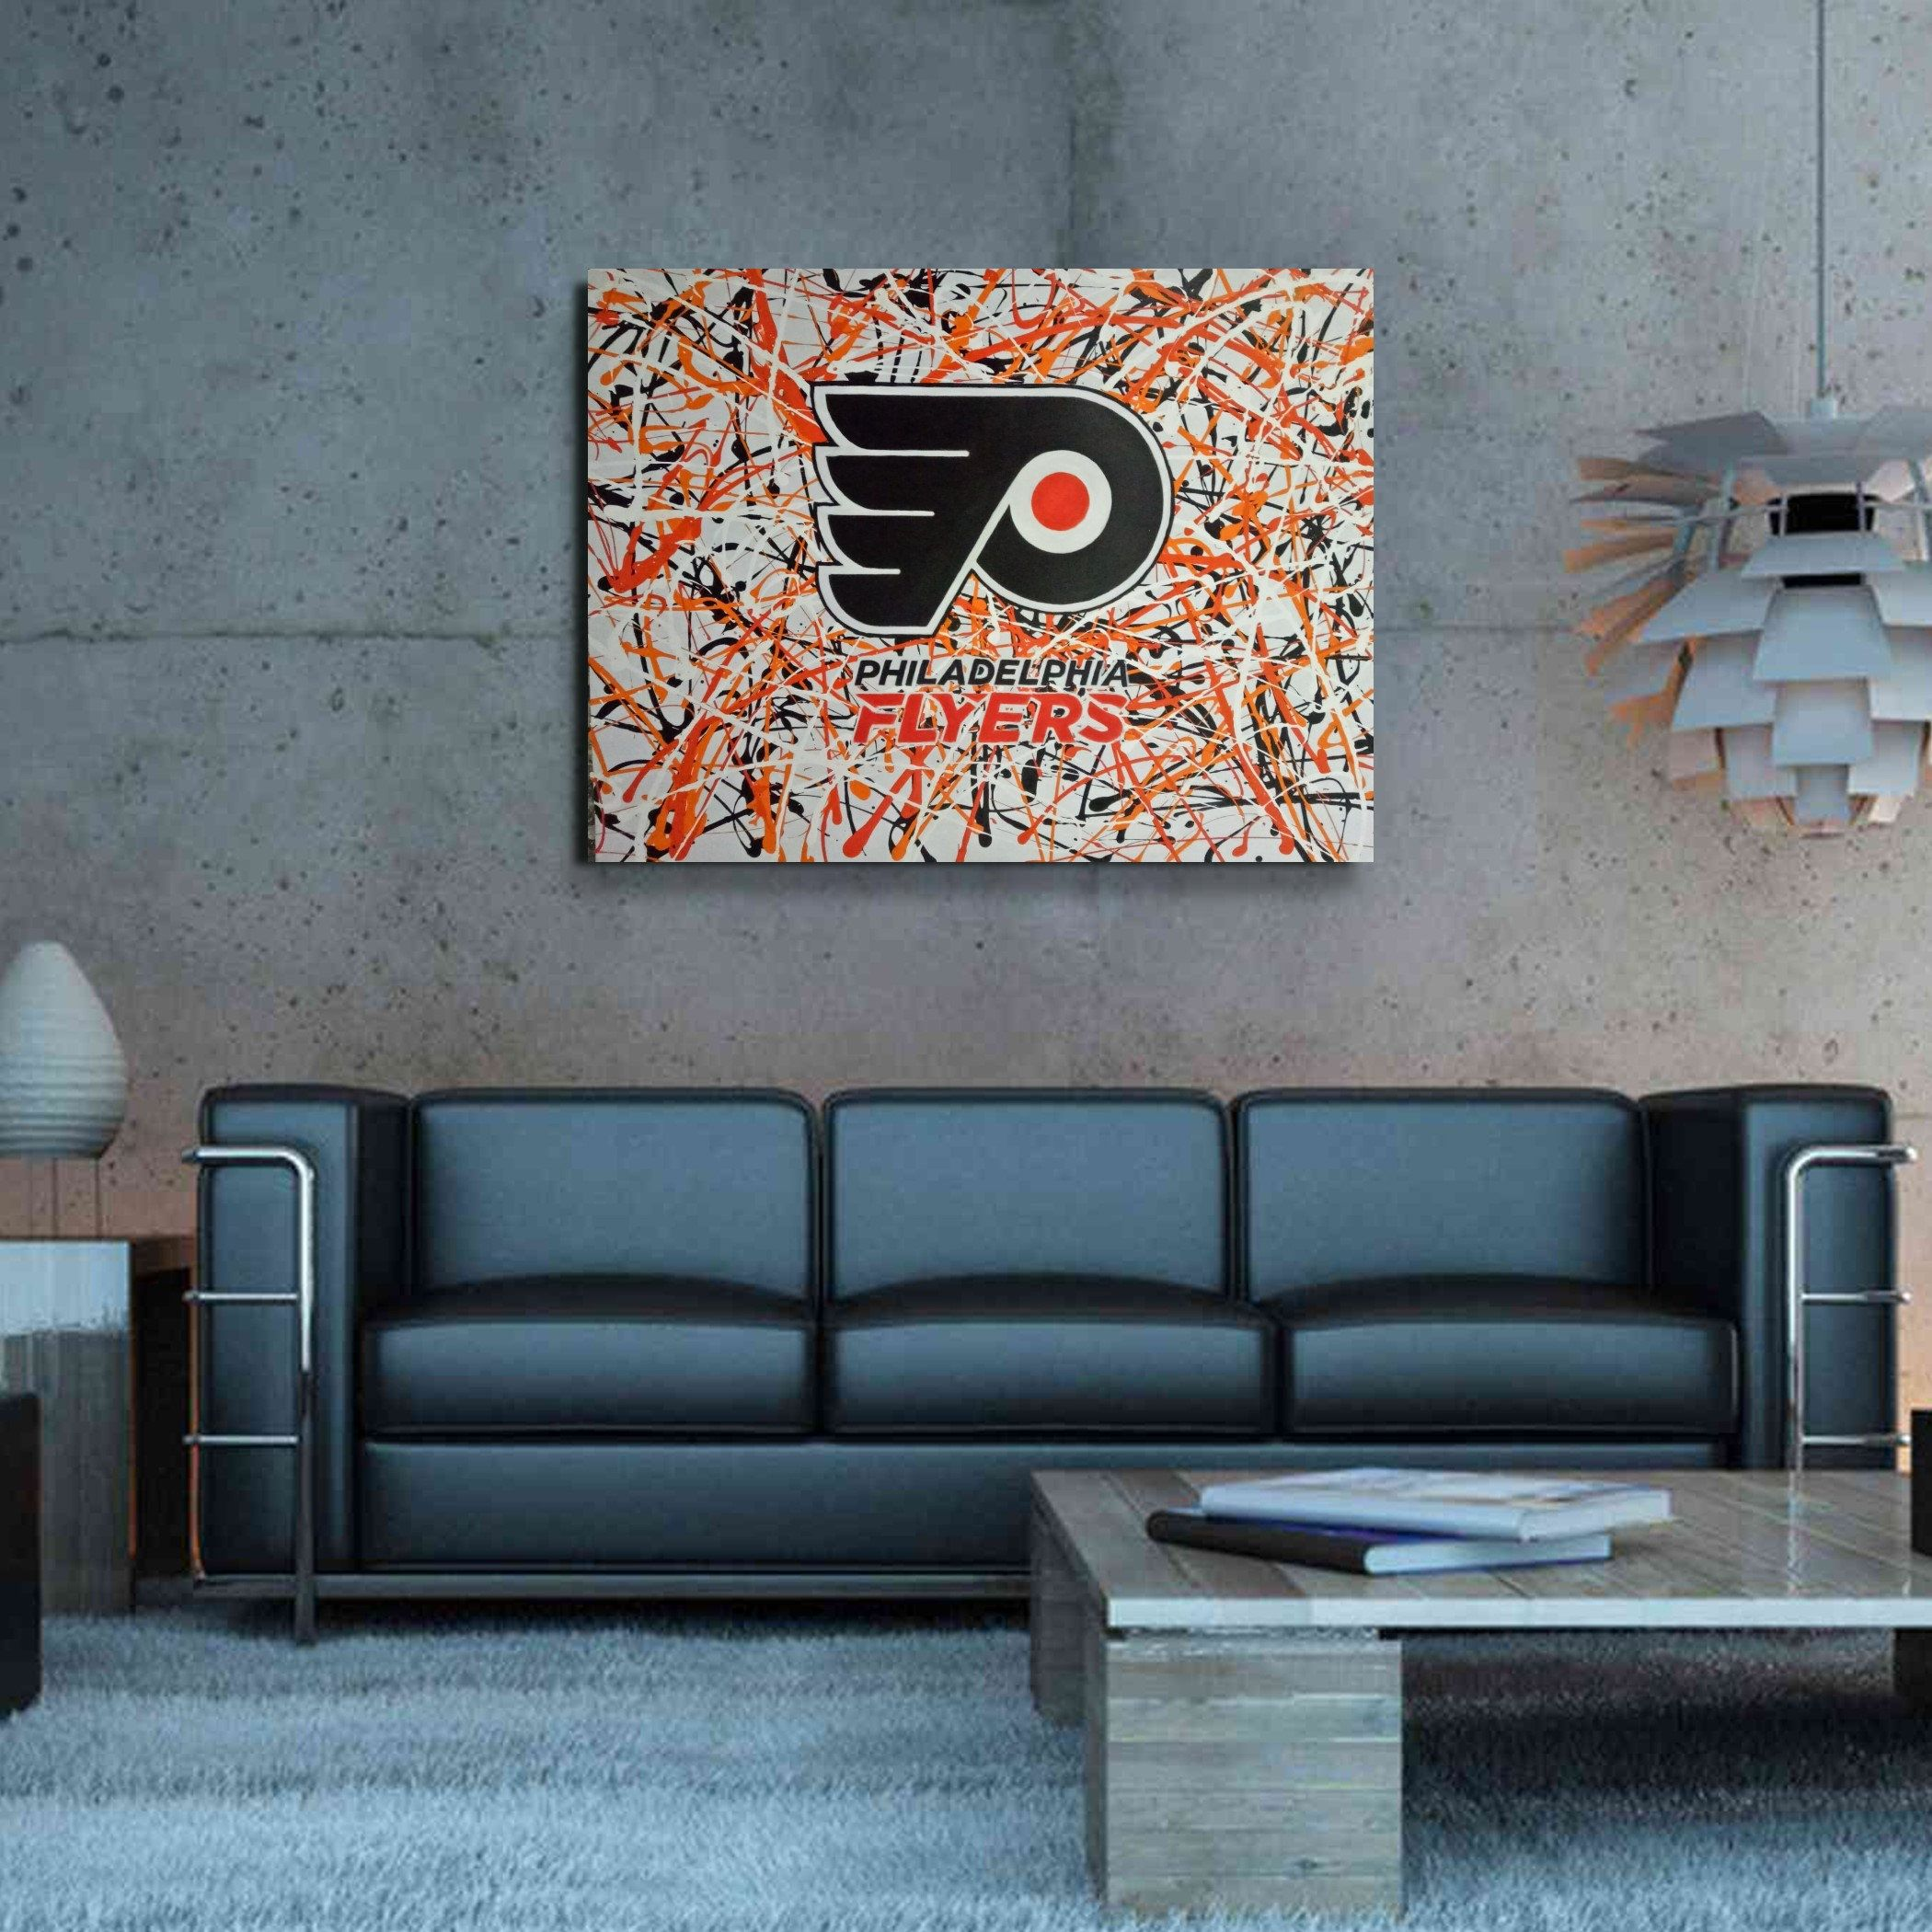 Side Hustle Arts Stylized Philadelphia Flyers Abstract Wall Art Large Hand Painted 30 X 40 Original Abstract Painting Original Abstract Painting Abstract Wall Art Painting